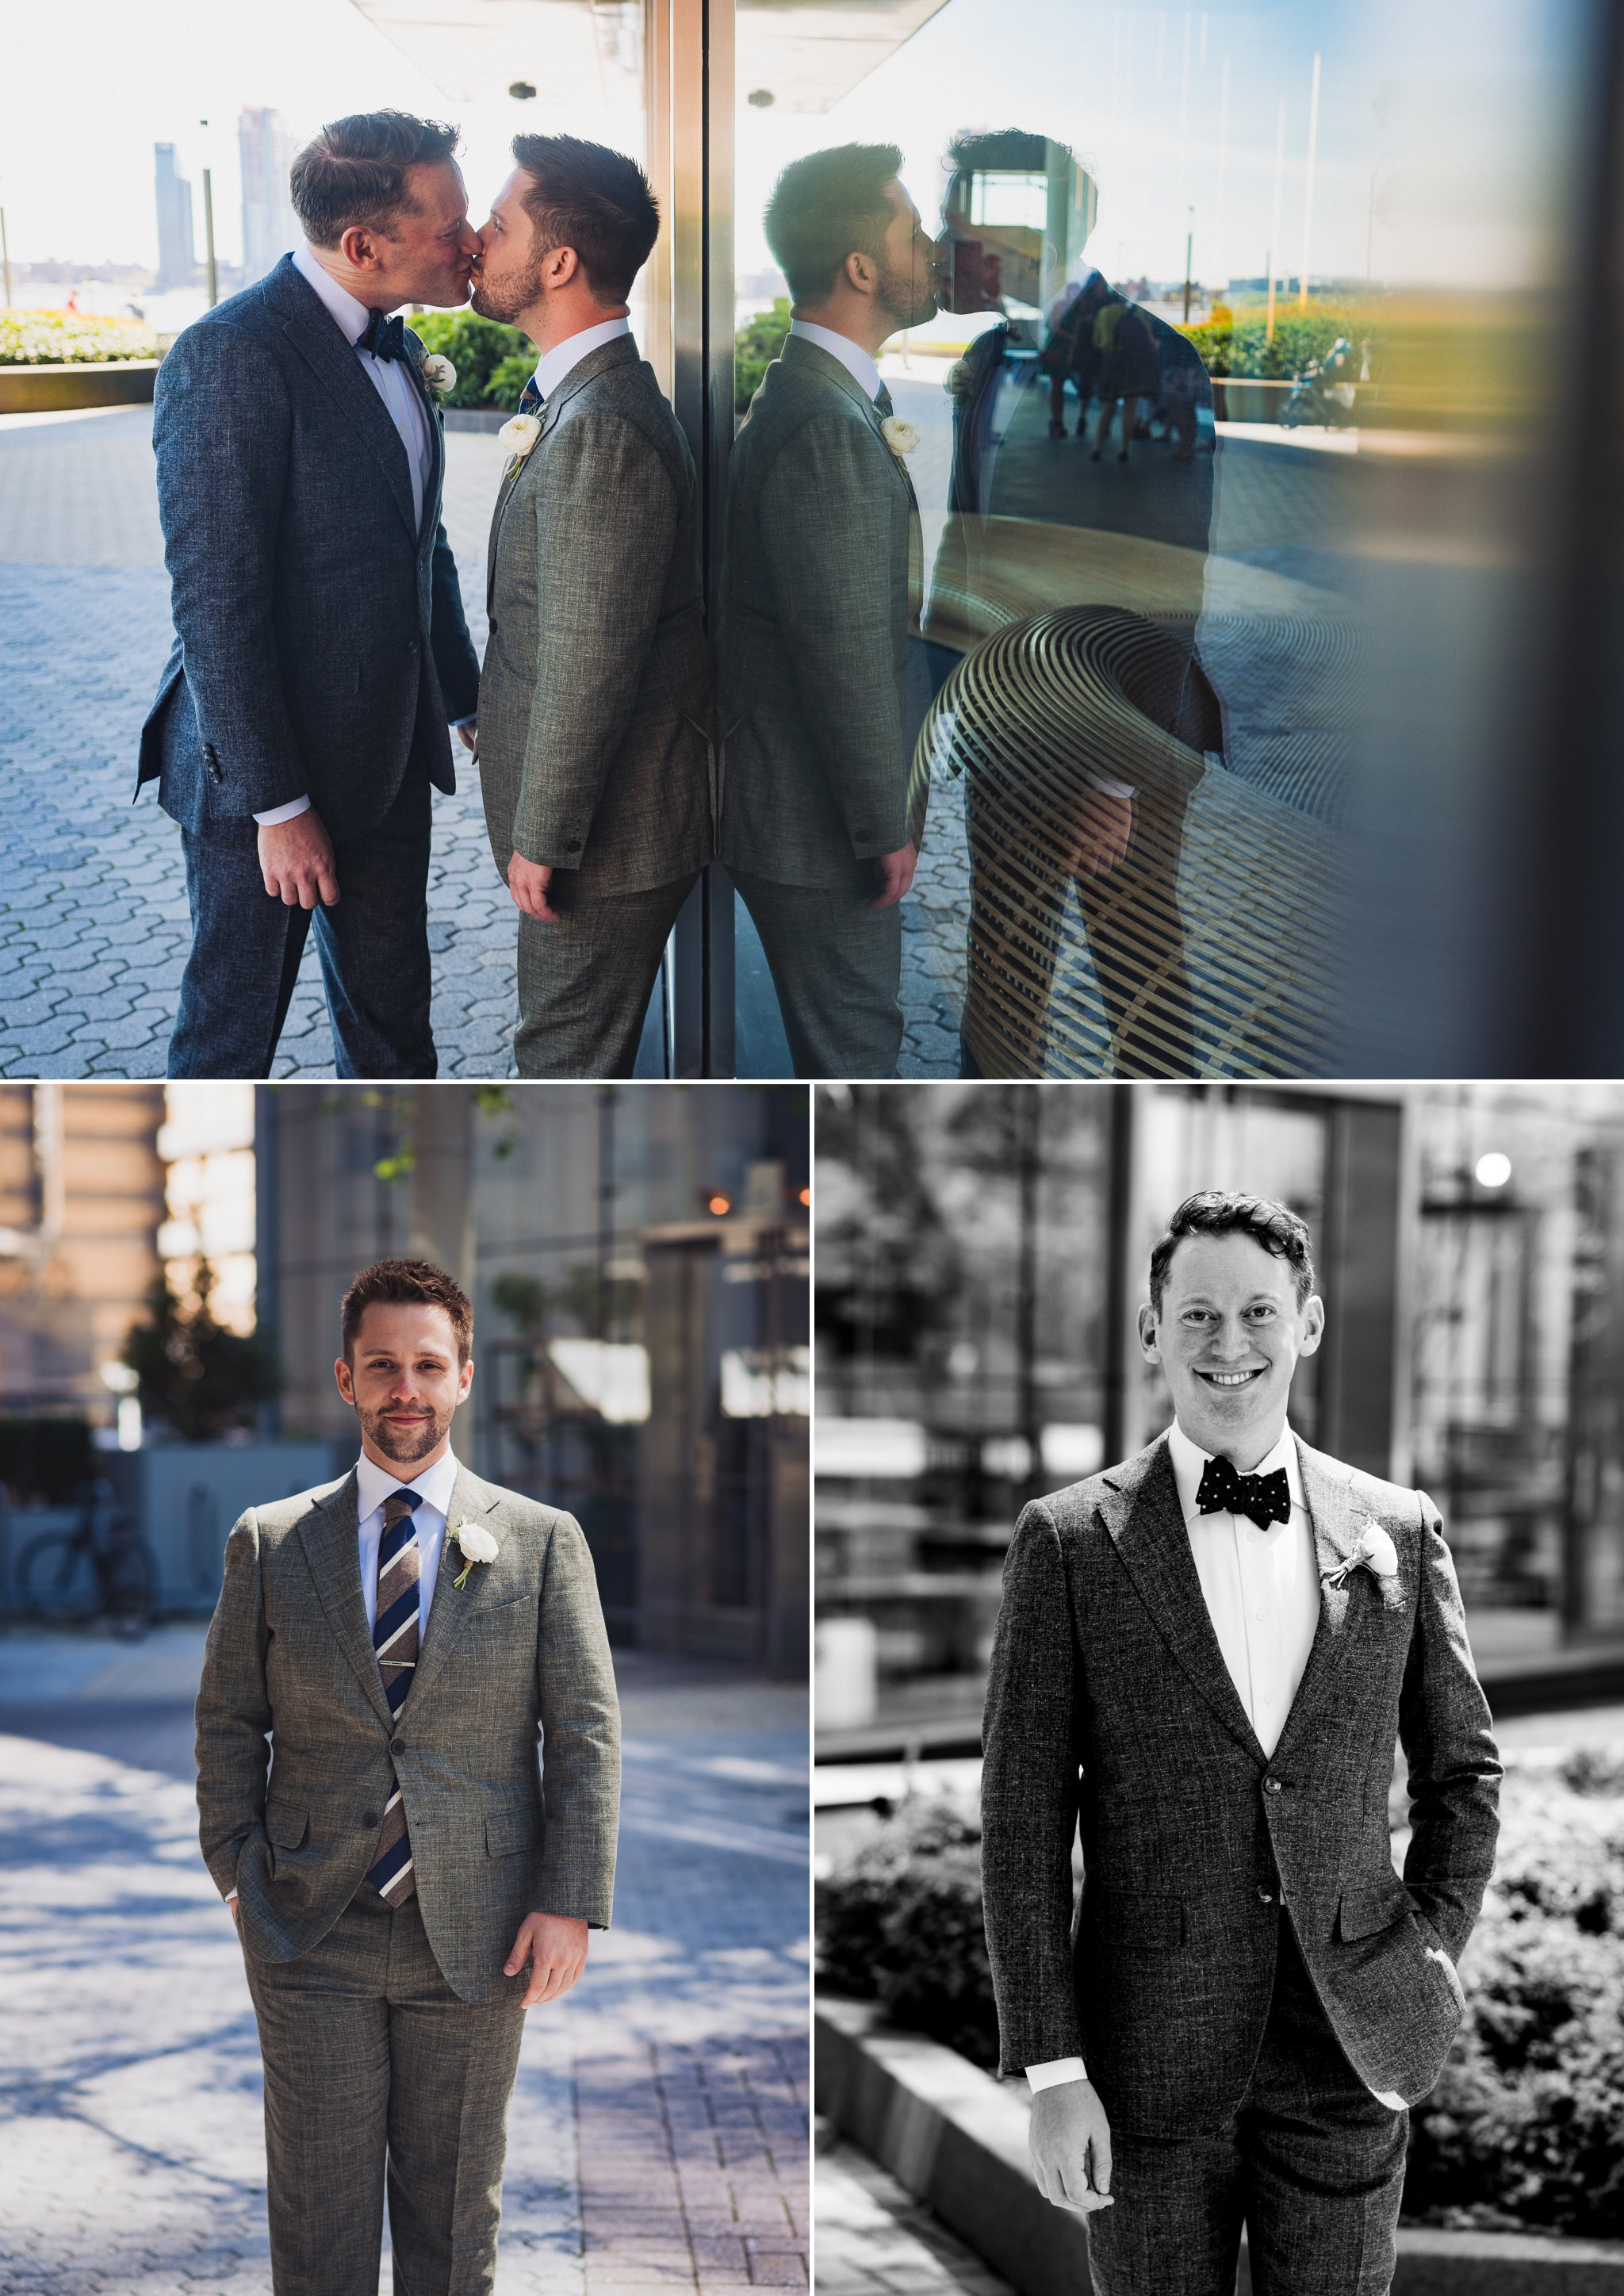 More scenes from Brian and Scott's gay wedding at Riverpark NYC. There's a certain timeless quality to good black and white images, and these were no exception.